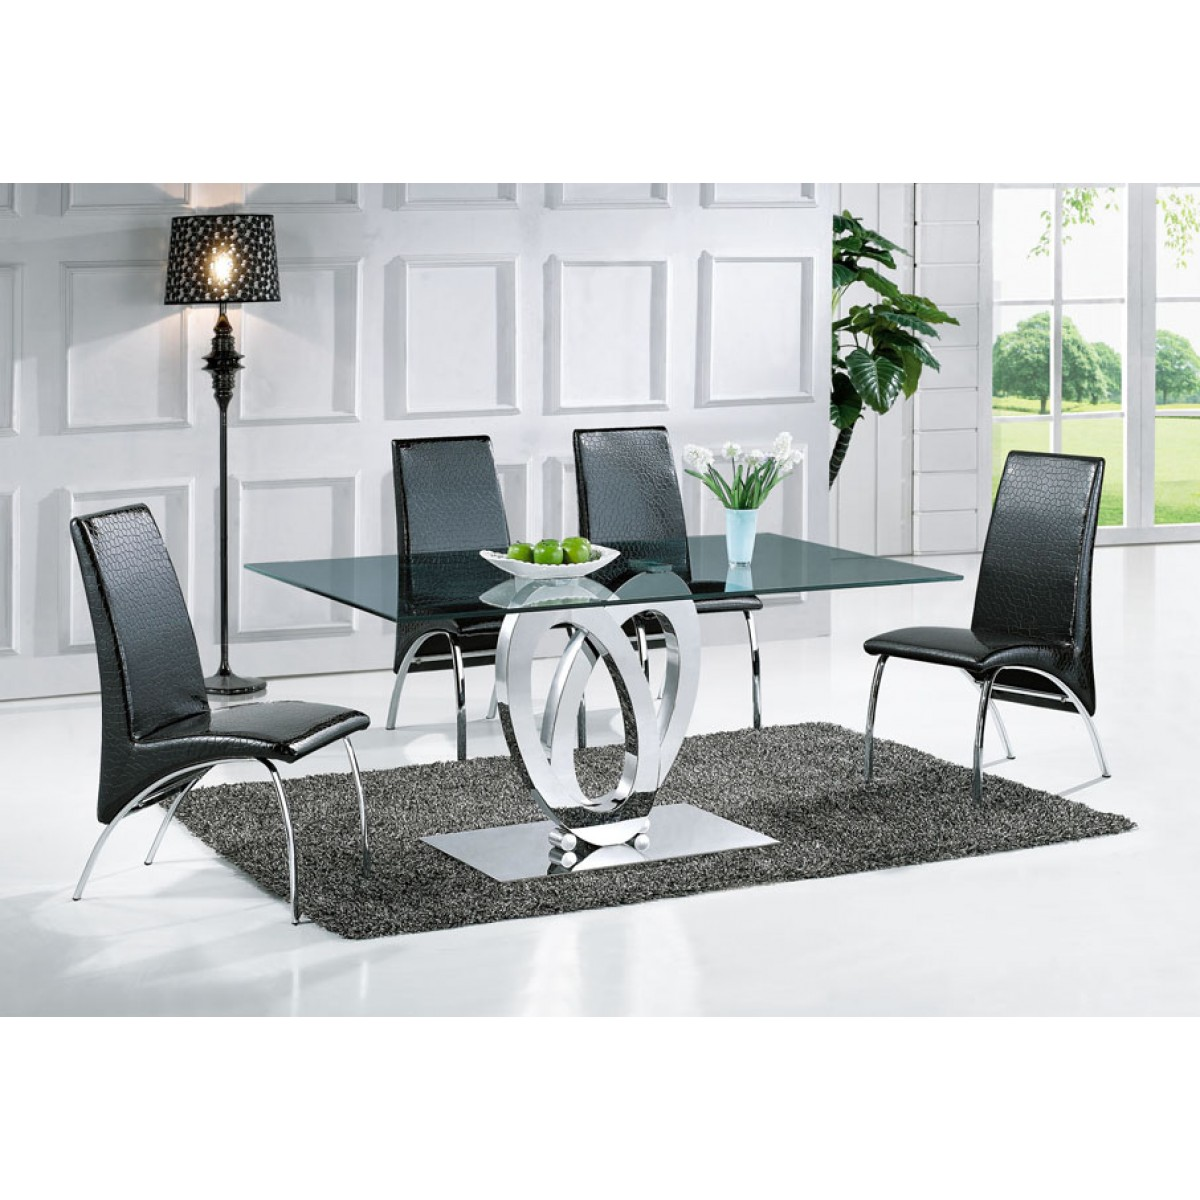 Table salle a manger design for Table salle a manger 80x80